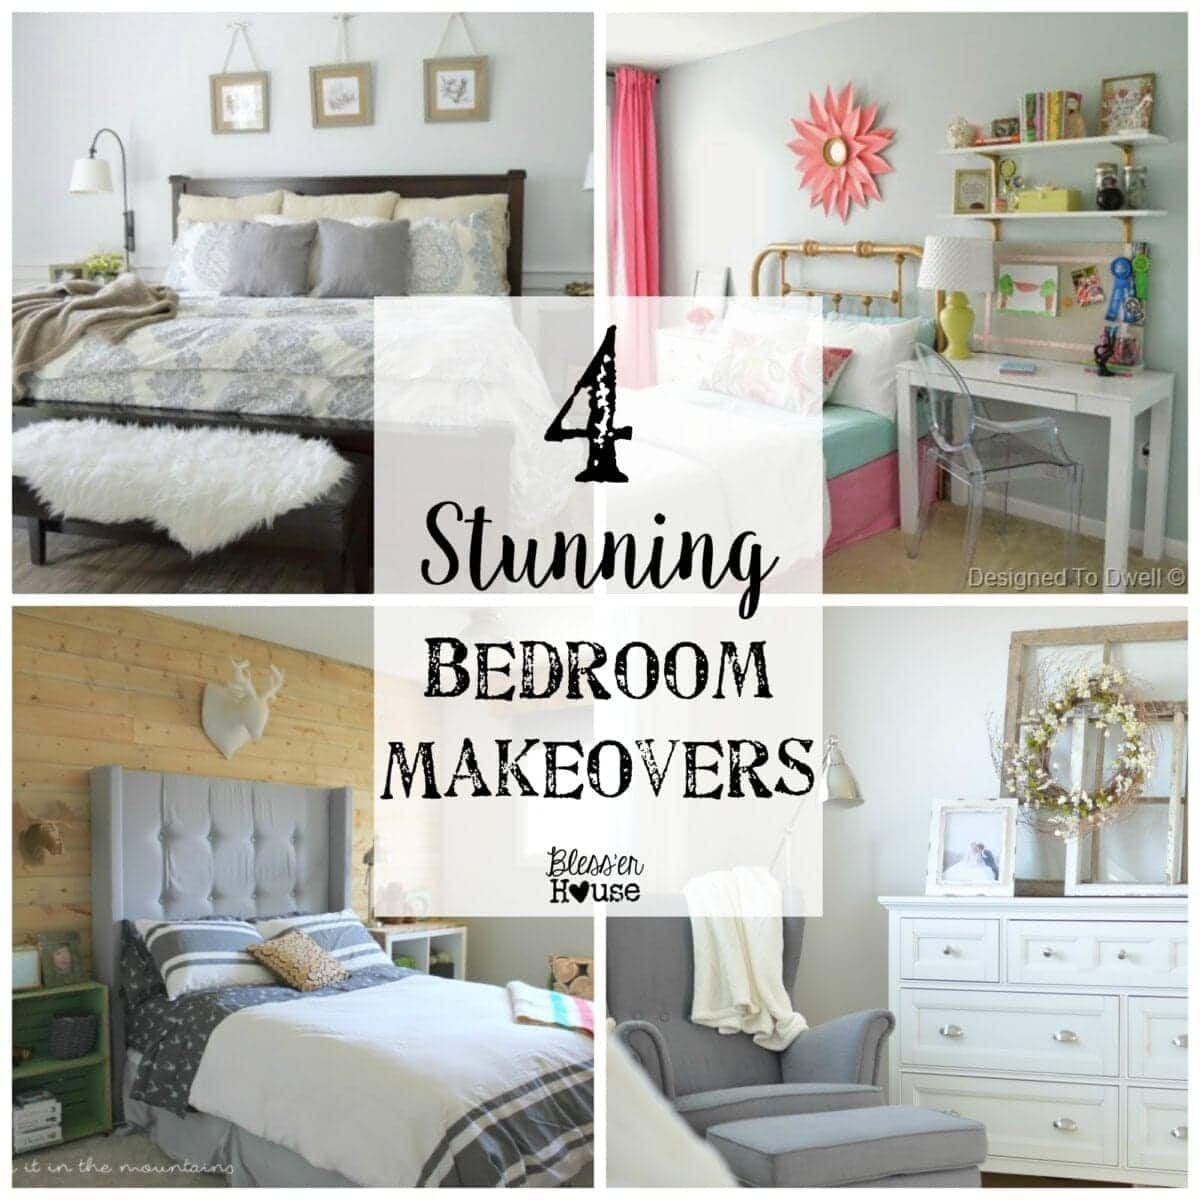 Summer Home Makeover Easy Cheap Ideas: 4 Stunning Bedroom Makeovers